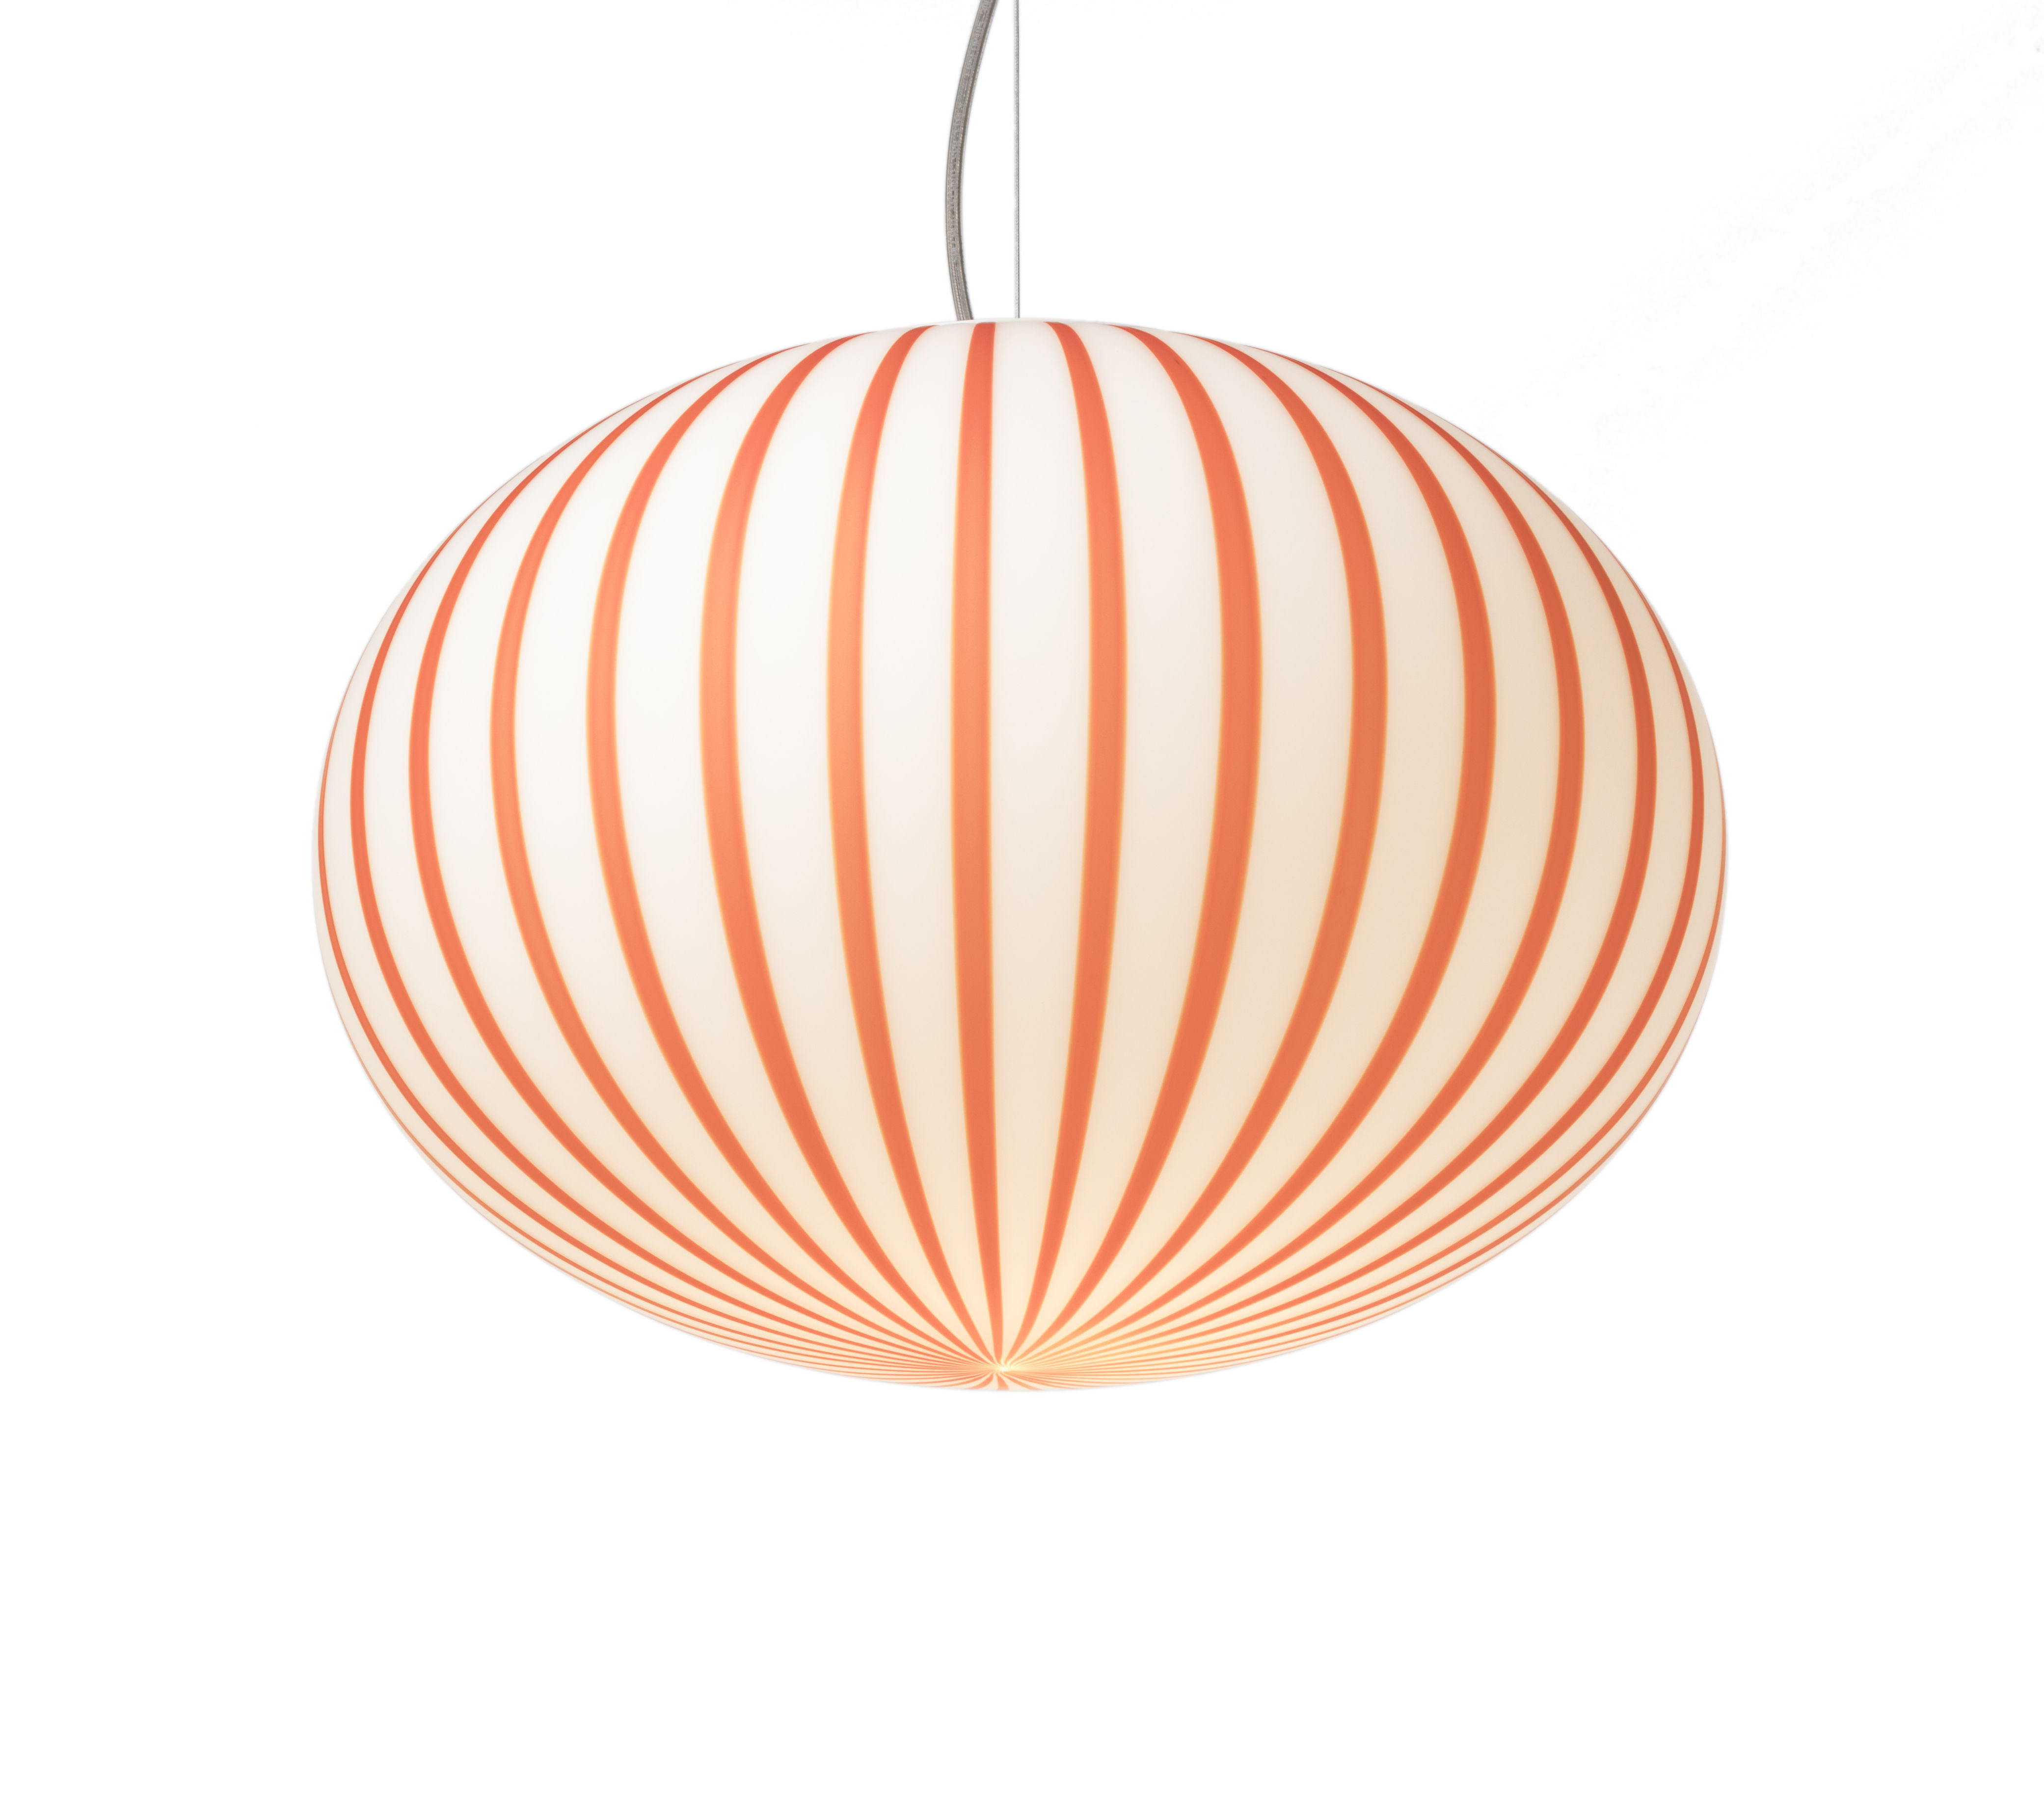 Lighting - Pendant Lighting - Filigrana Ellipse Pendant - / Red stripes - Ø 16 cm by Established & Sons - White / Red stripes - Acrylic, Metal, Mouth blown glass